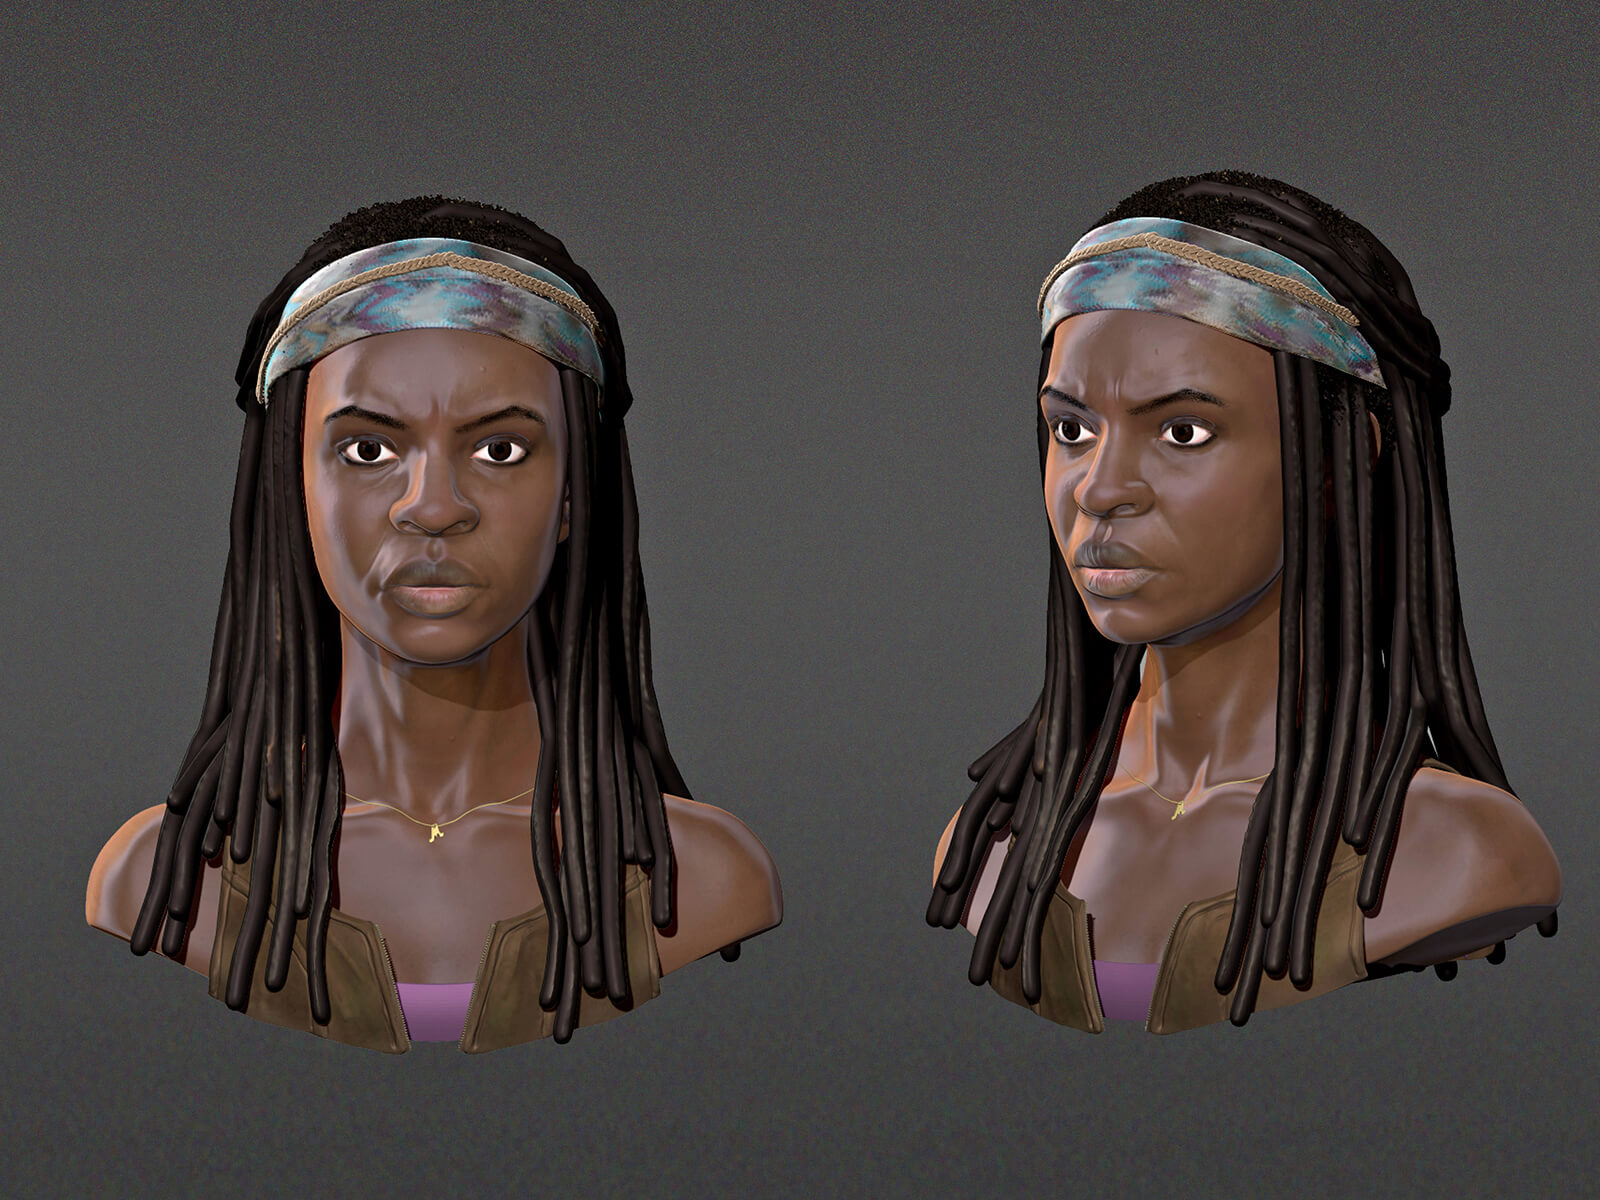 computer-generated 3D model of a fierce-looking black woman with 2 views - head-on and partial profile